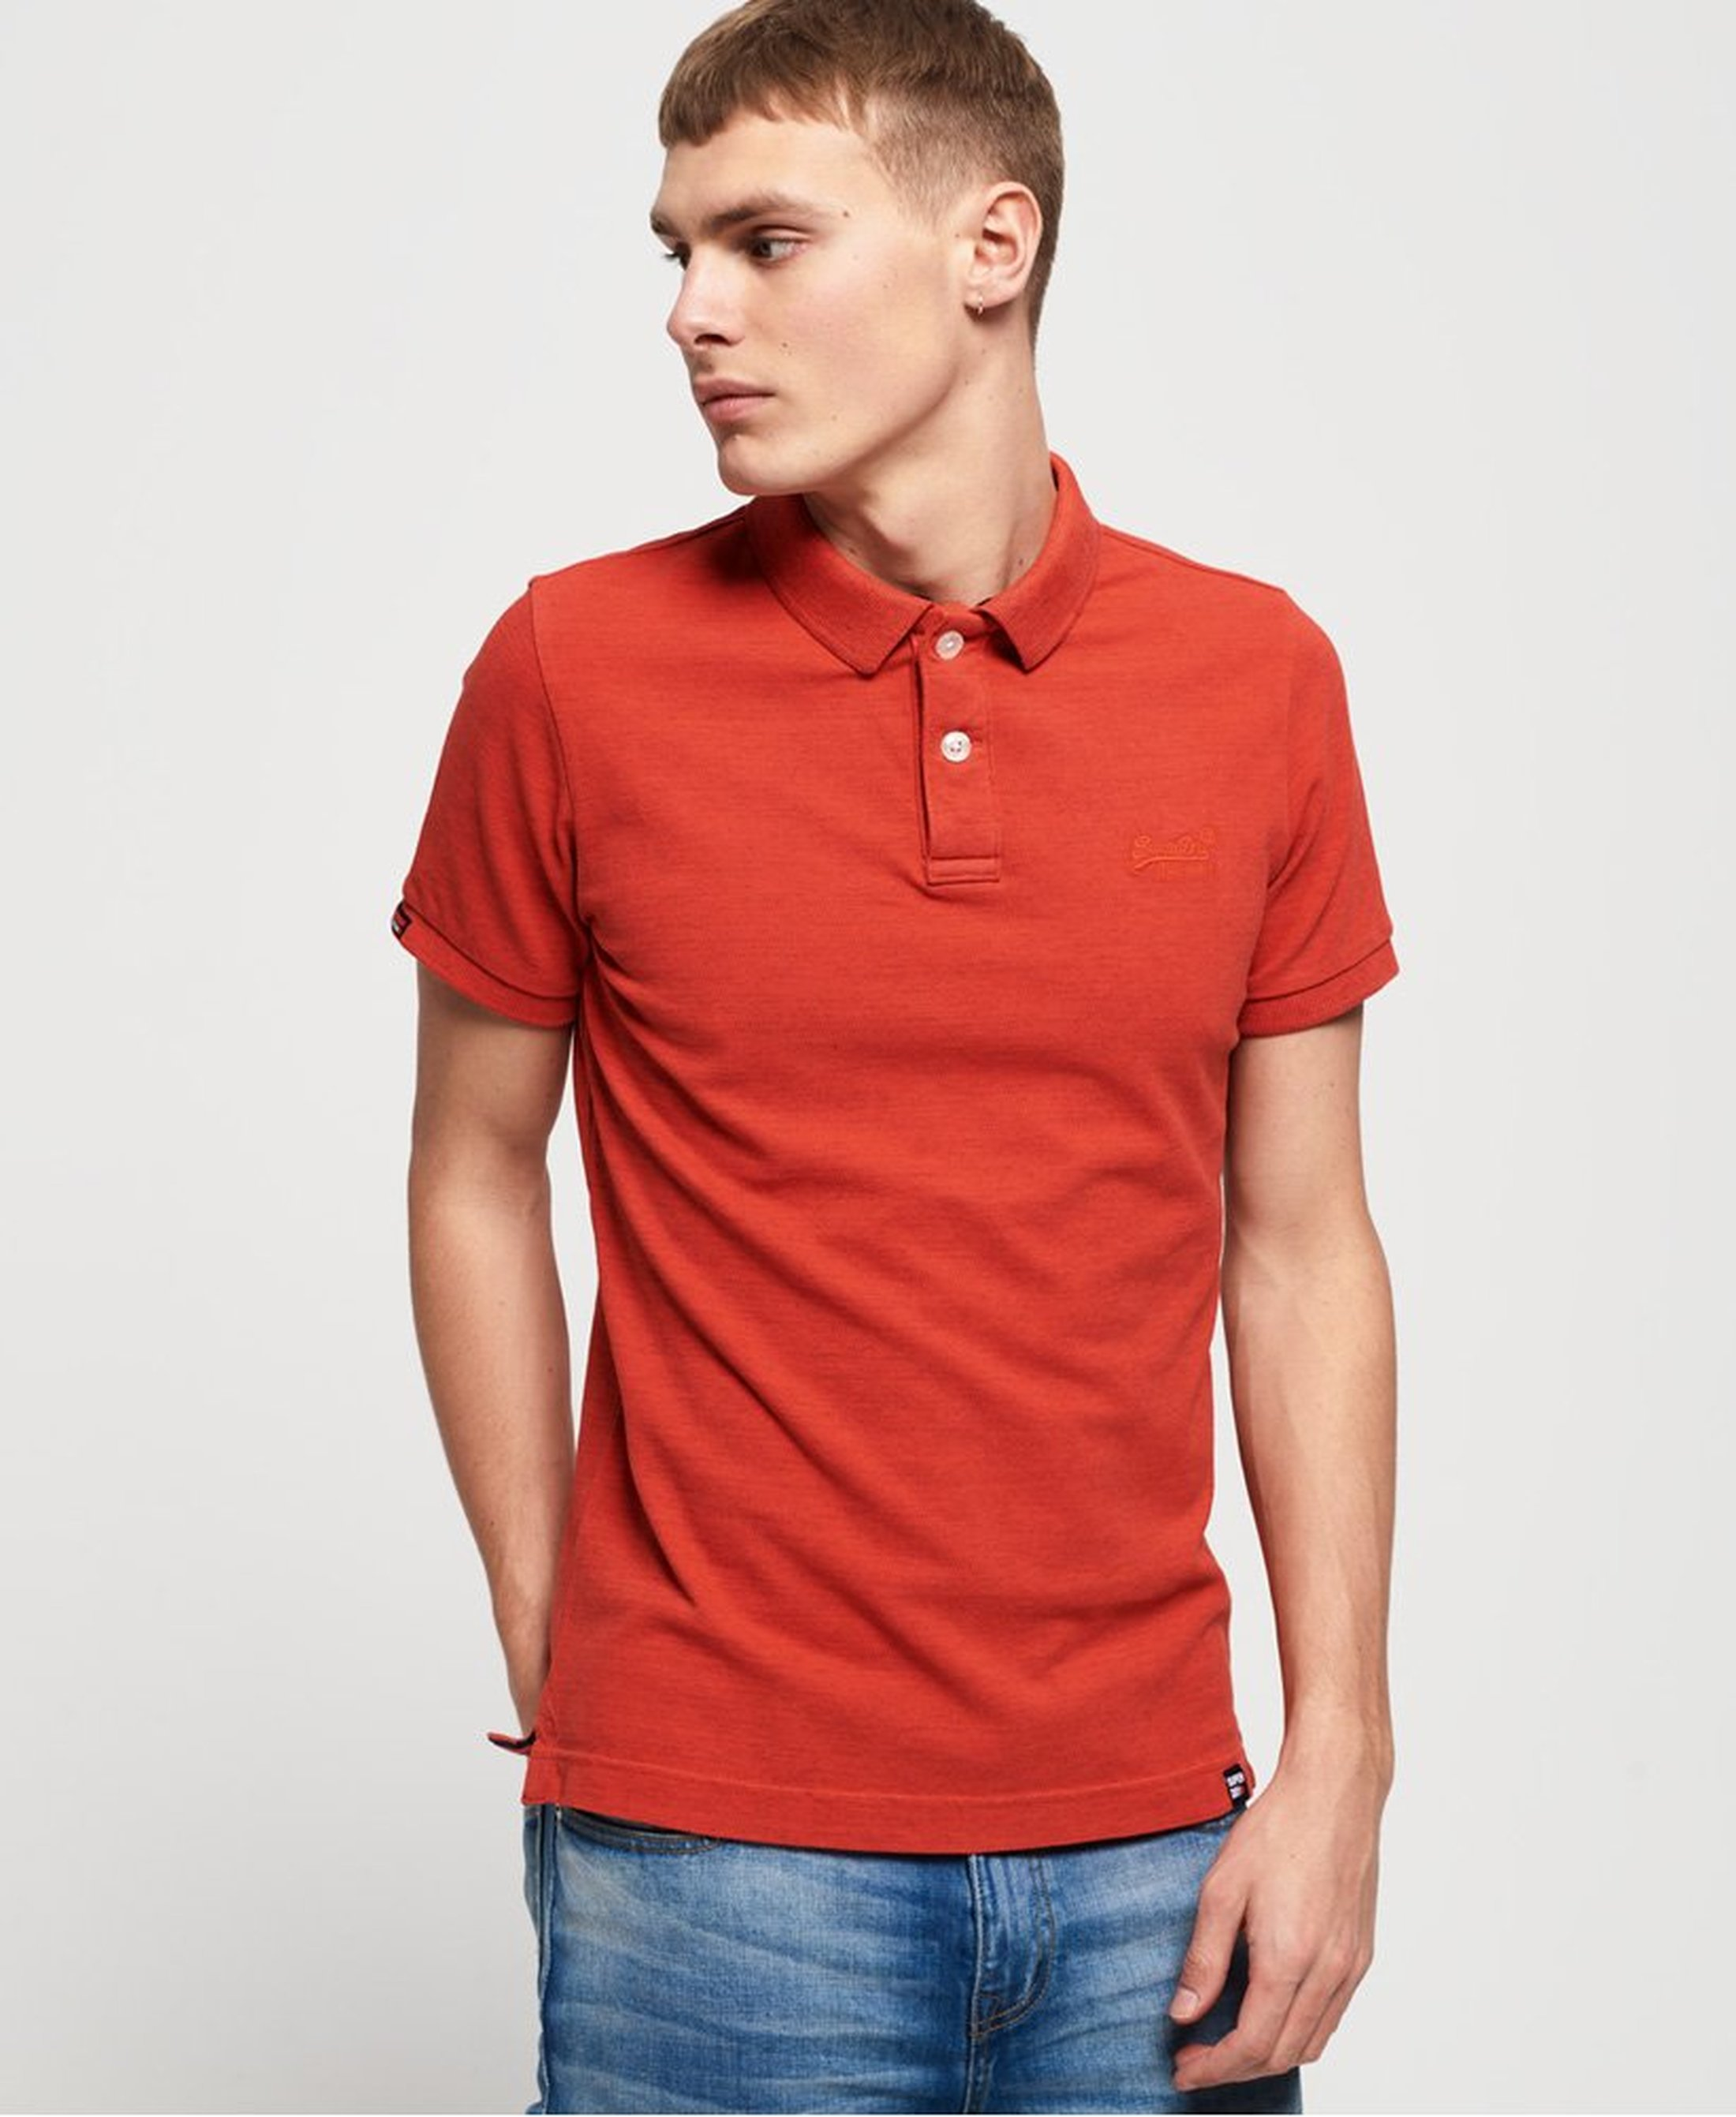 Superdry Premium Poloshirt Orange foto 5